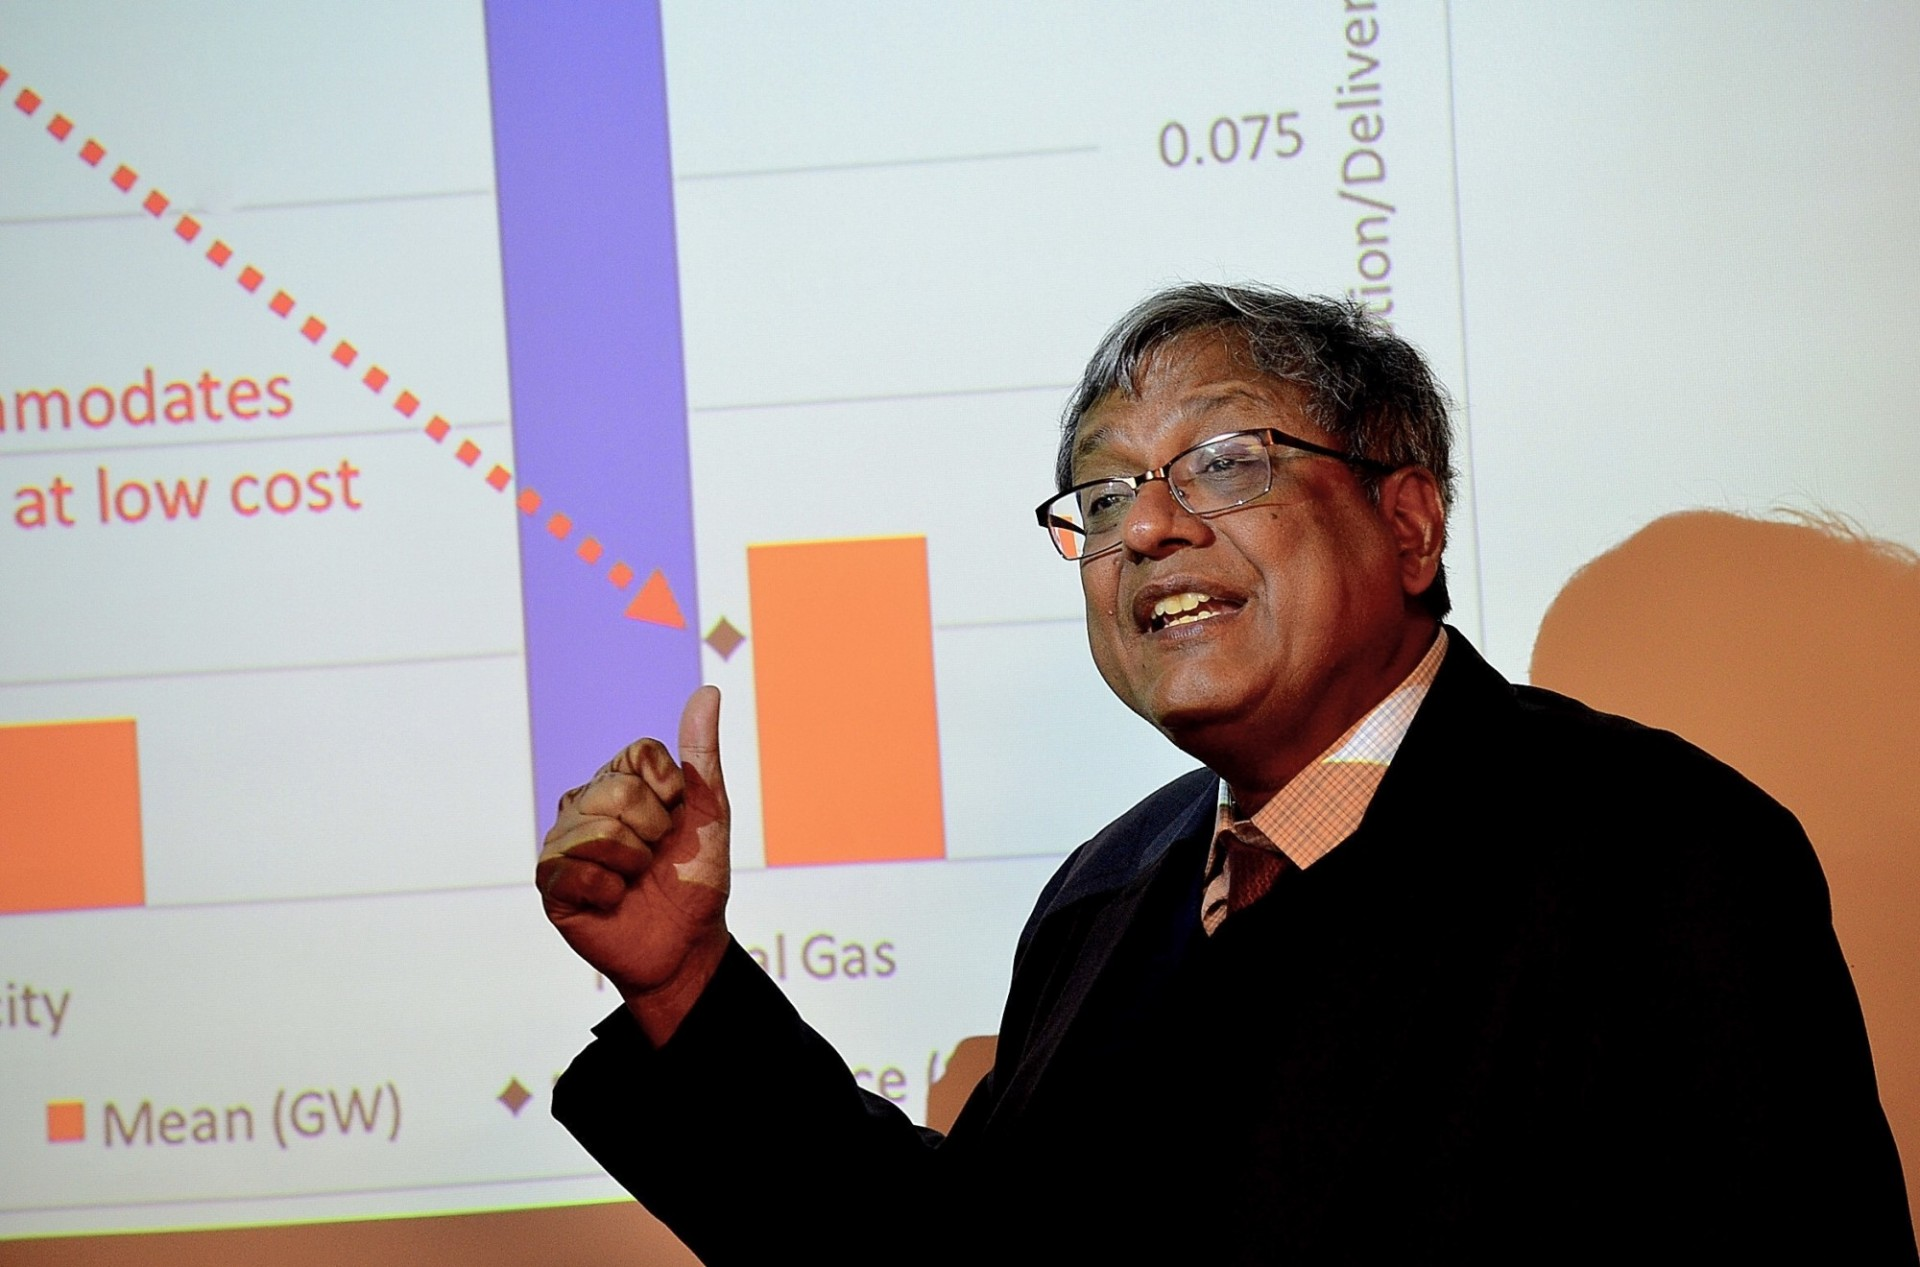 Vijay Modi presenting Energy Planning with Low-priced Wind and Solar